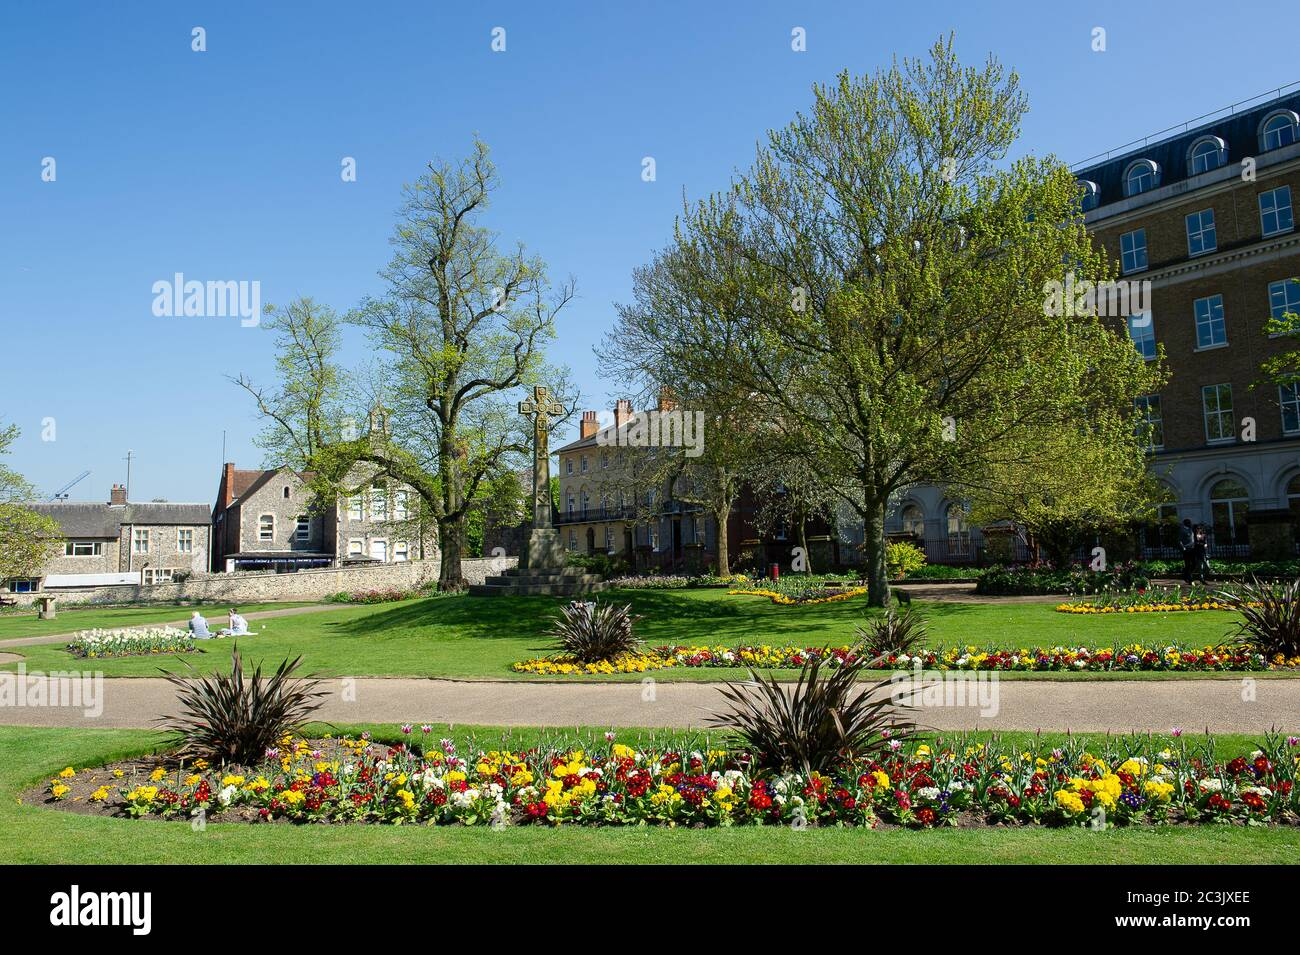 Reading, Berkshire, UK. 23rd April, 2015. Public Park Forbury Gardens in Reading Town Centre, Reading, Berkshire next to Reading Crown Court. Credit: Maureen McLean/Alamy Stock Photo